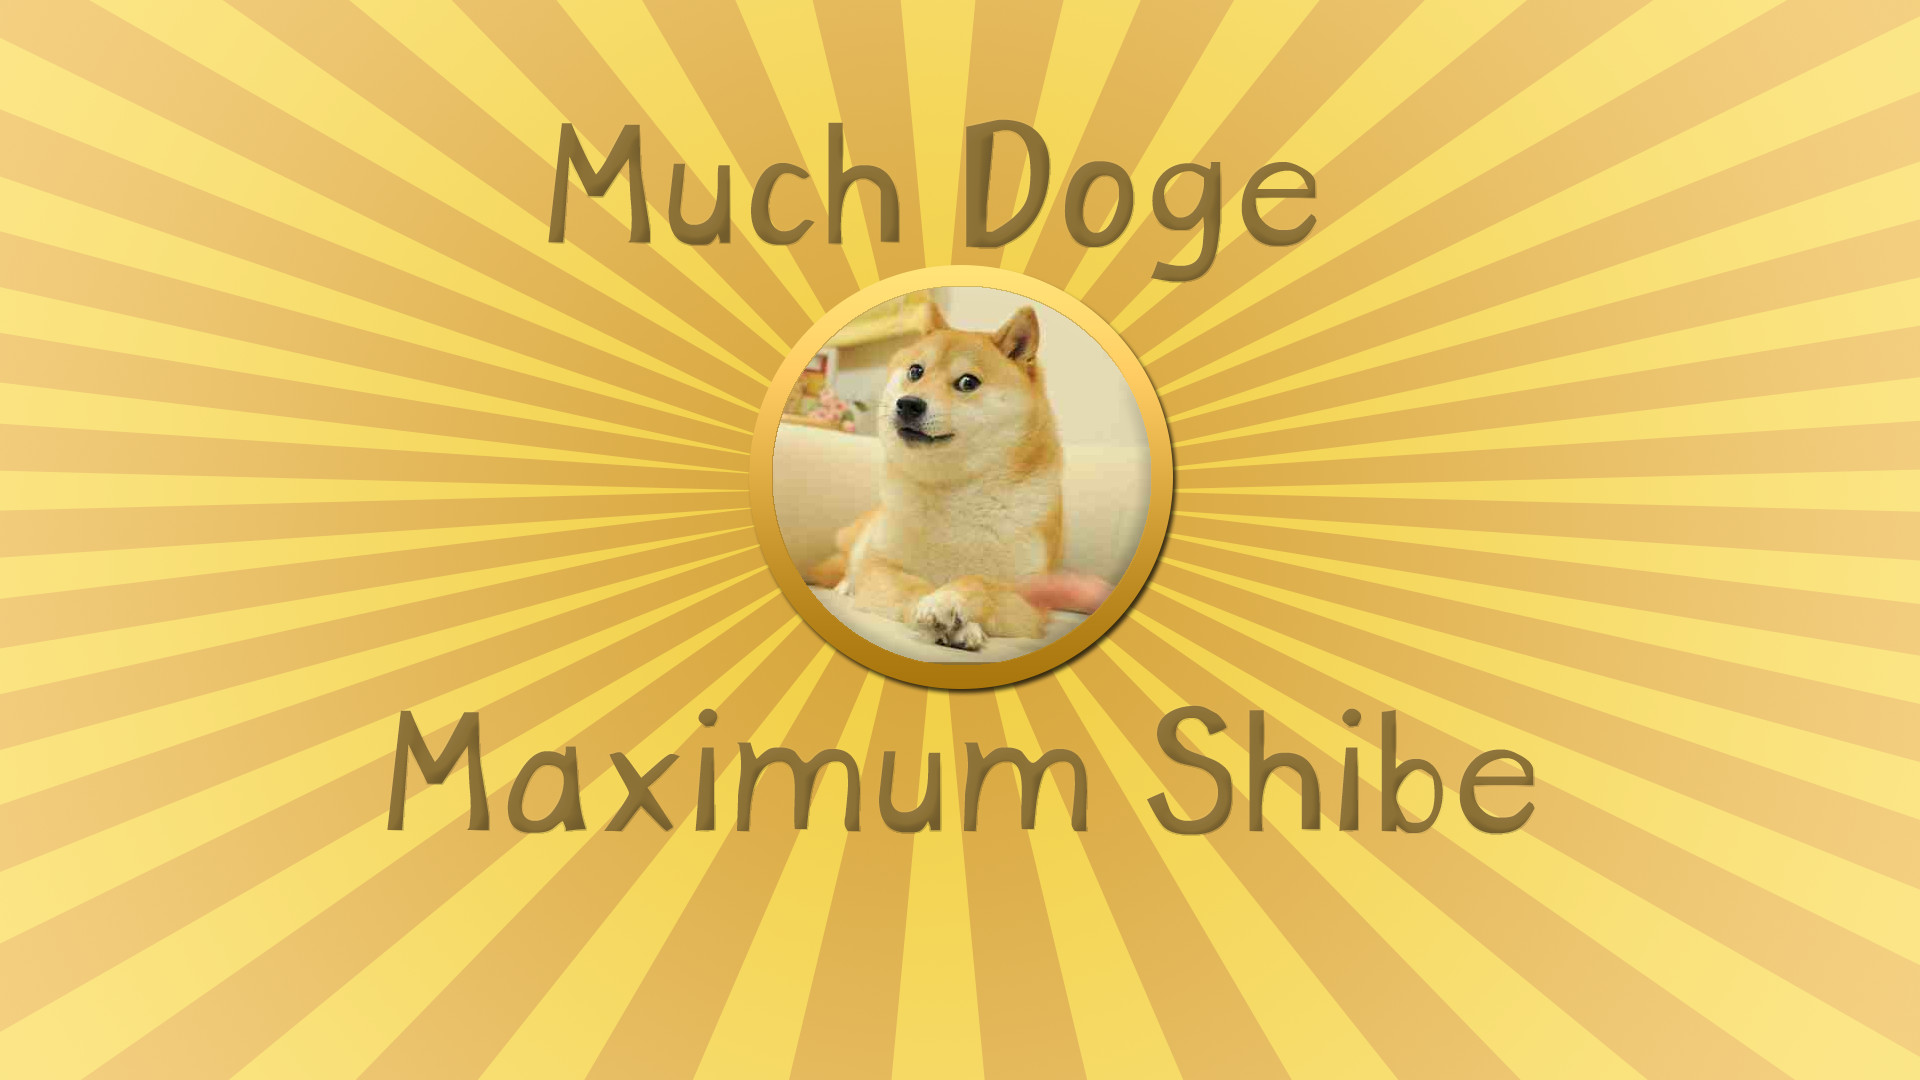 1920x1080 Doge Meme Wallpaper | Funny Cat & Dog Pictures